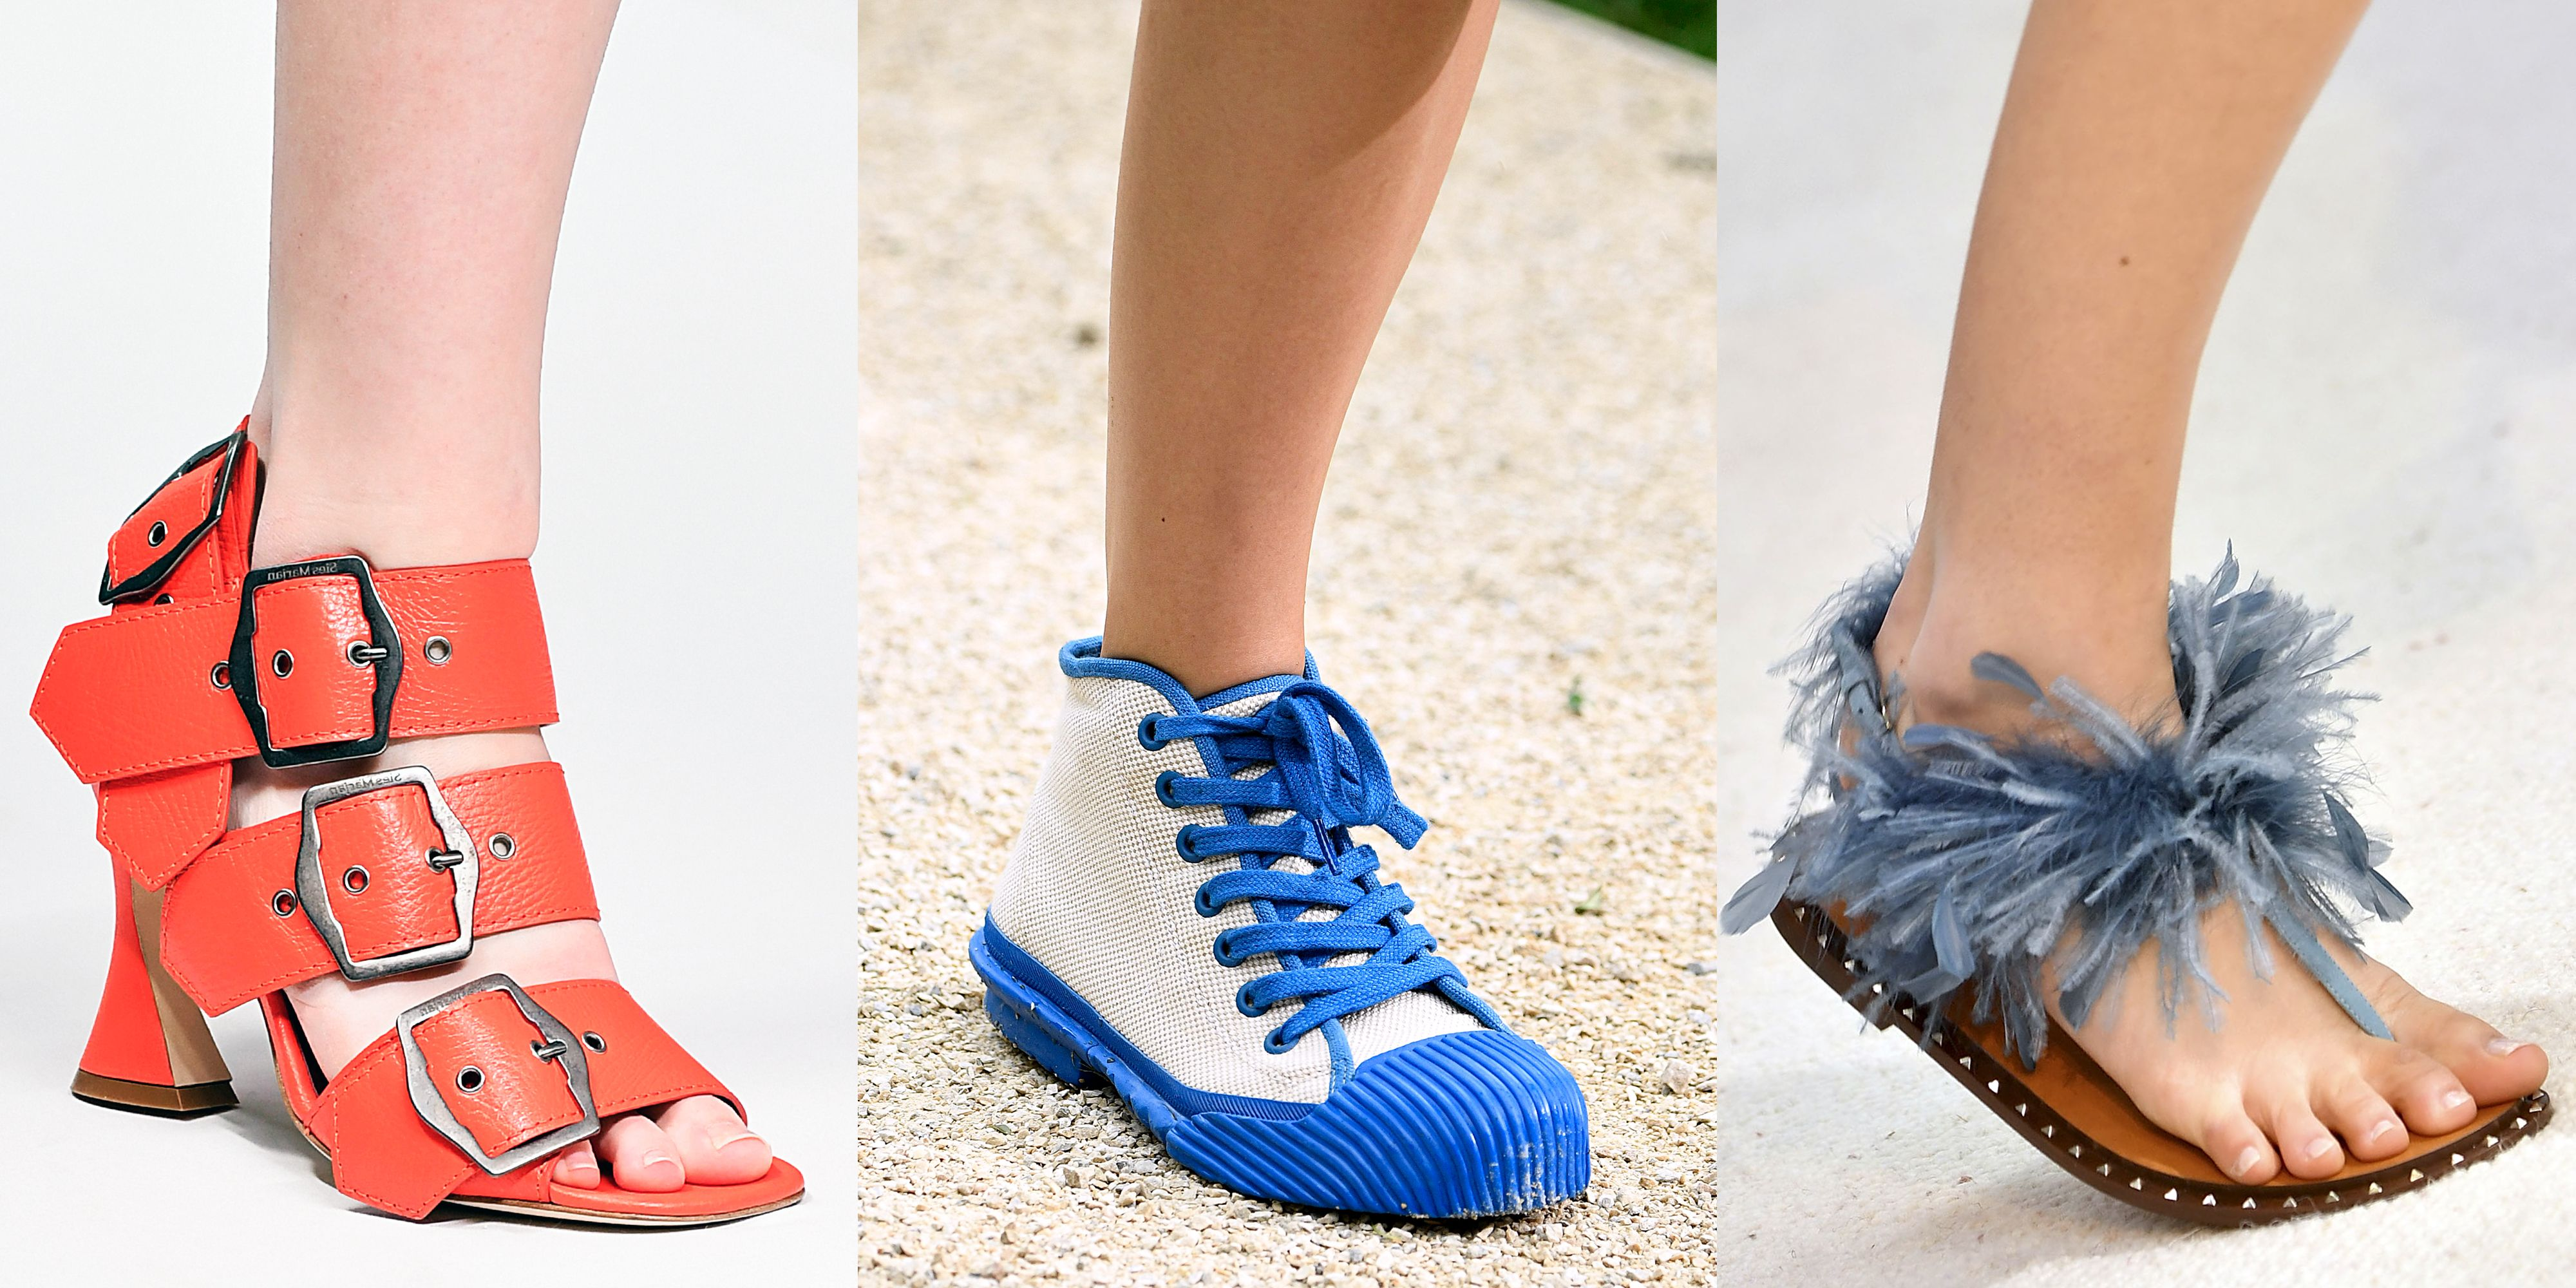 0a260721c55cb 7 Shoe Trends for 2019 - Flats